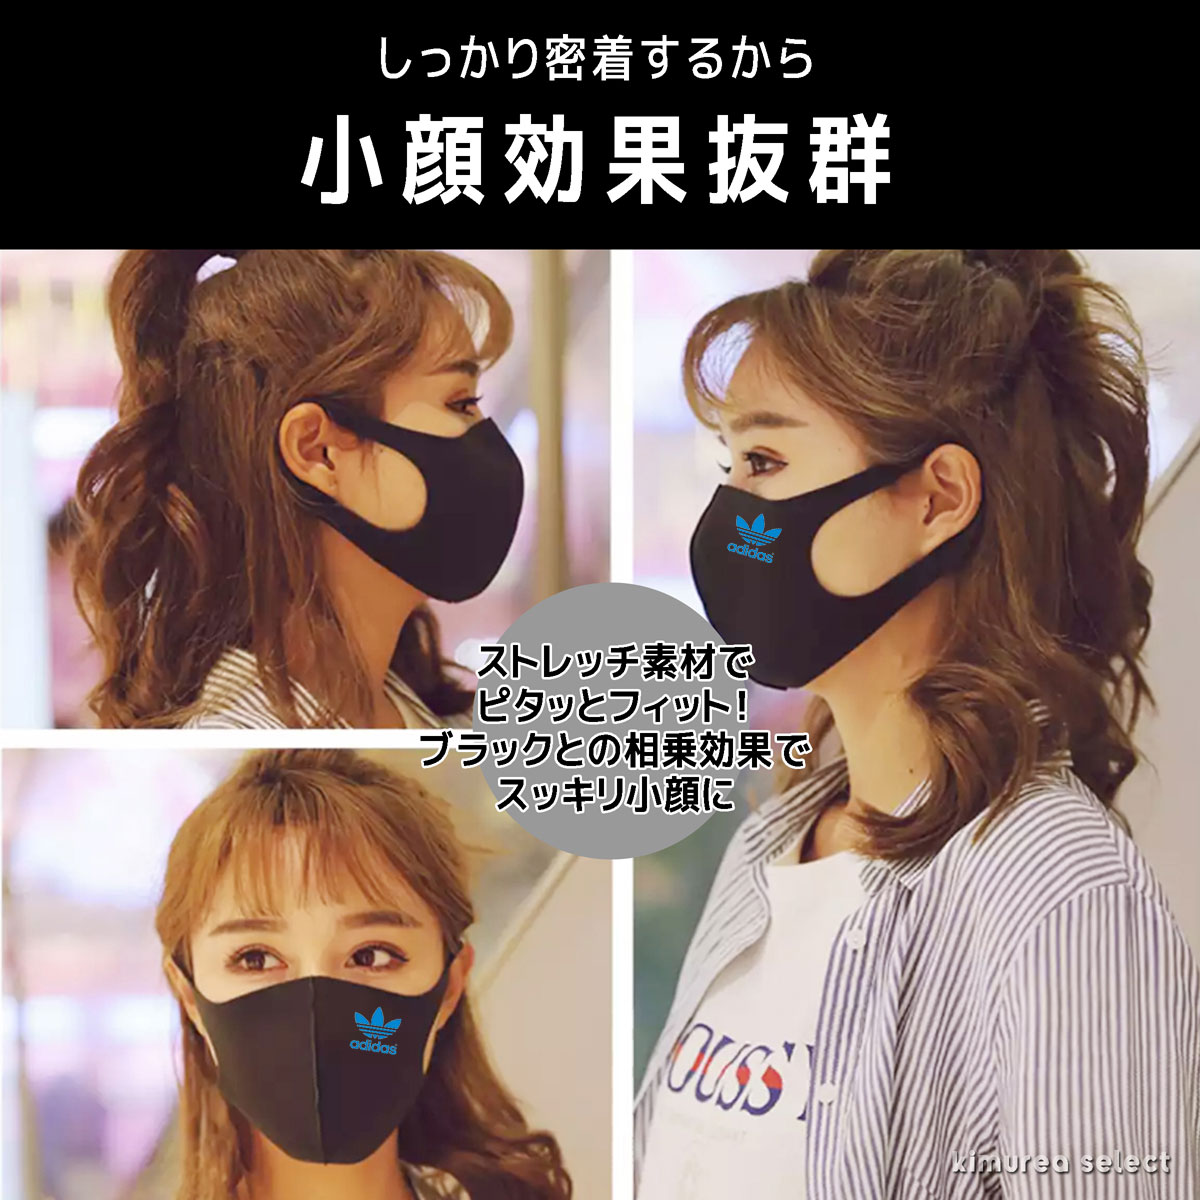 Brand Luxury Adidas Cloth Face Masks Fashion Celebrity 3D Reusable Washable Cover